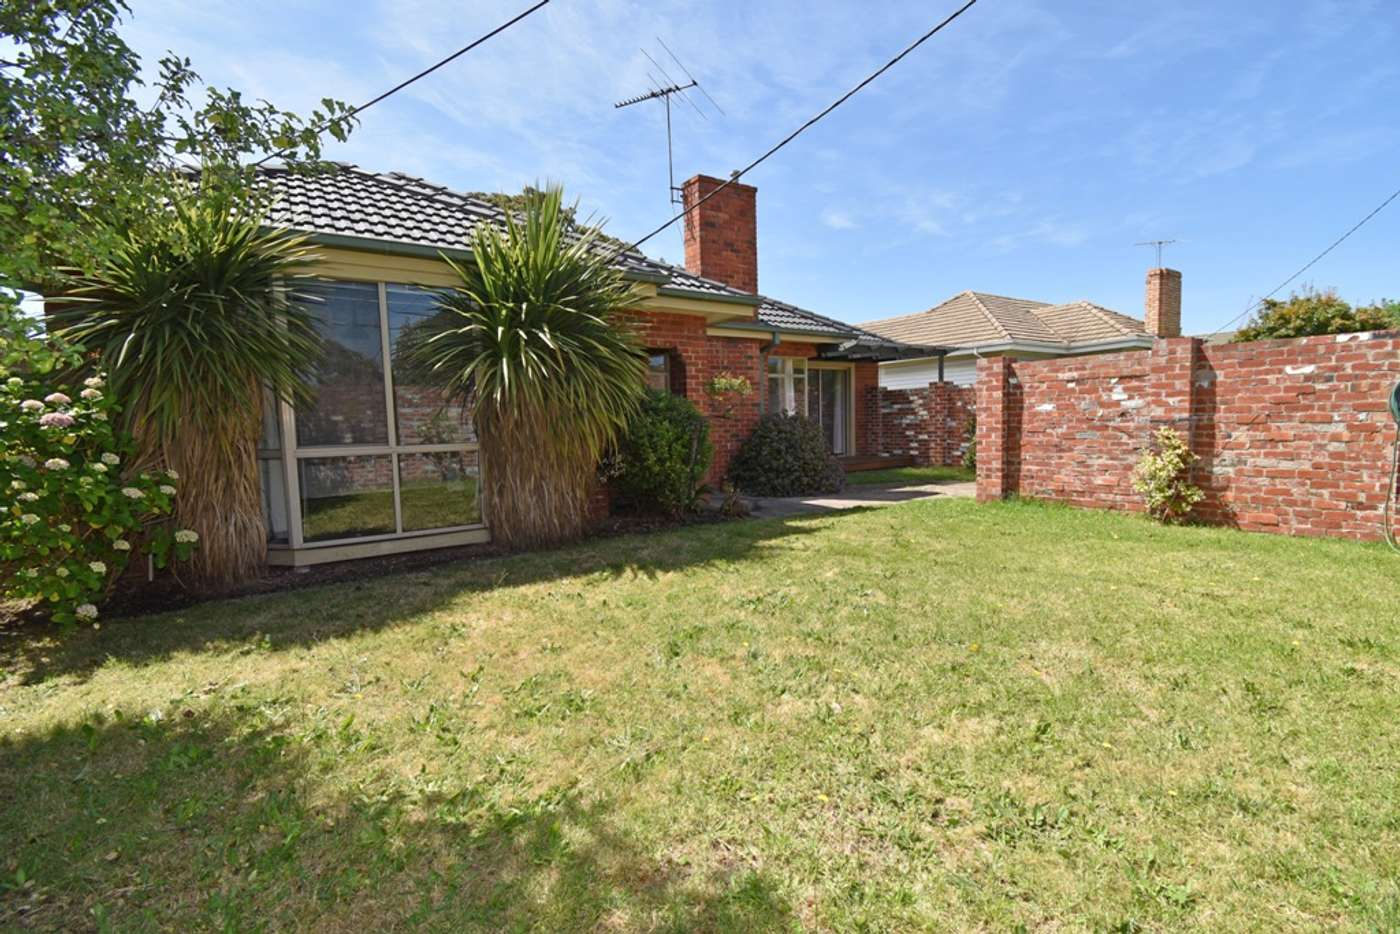 Main view of Homely house listing, 56 Jasper Road, Bentleigh VIC 3204